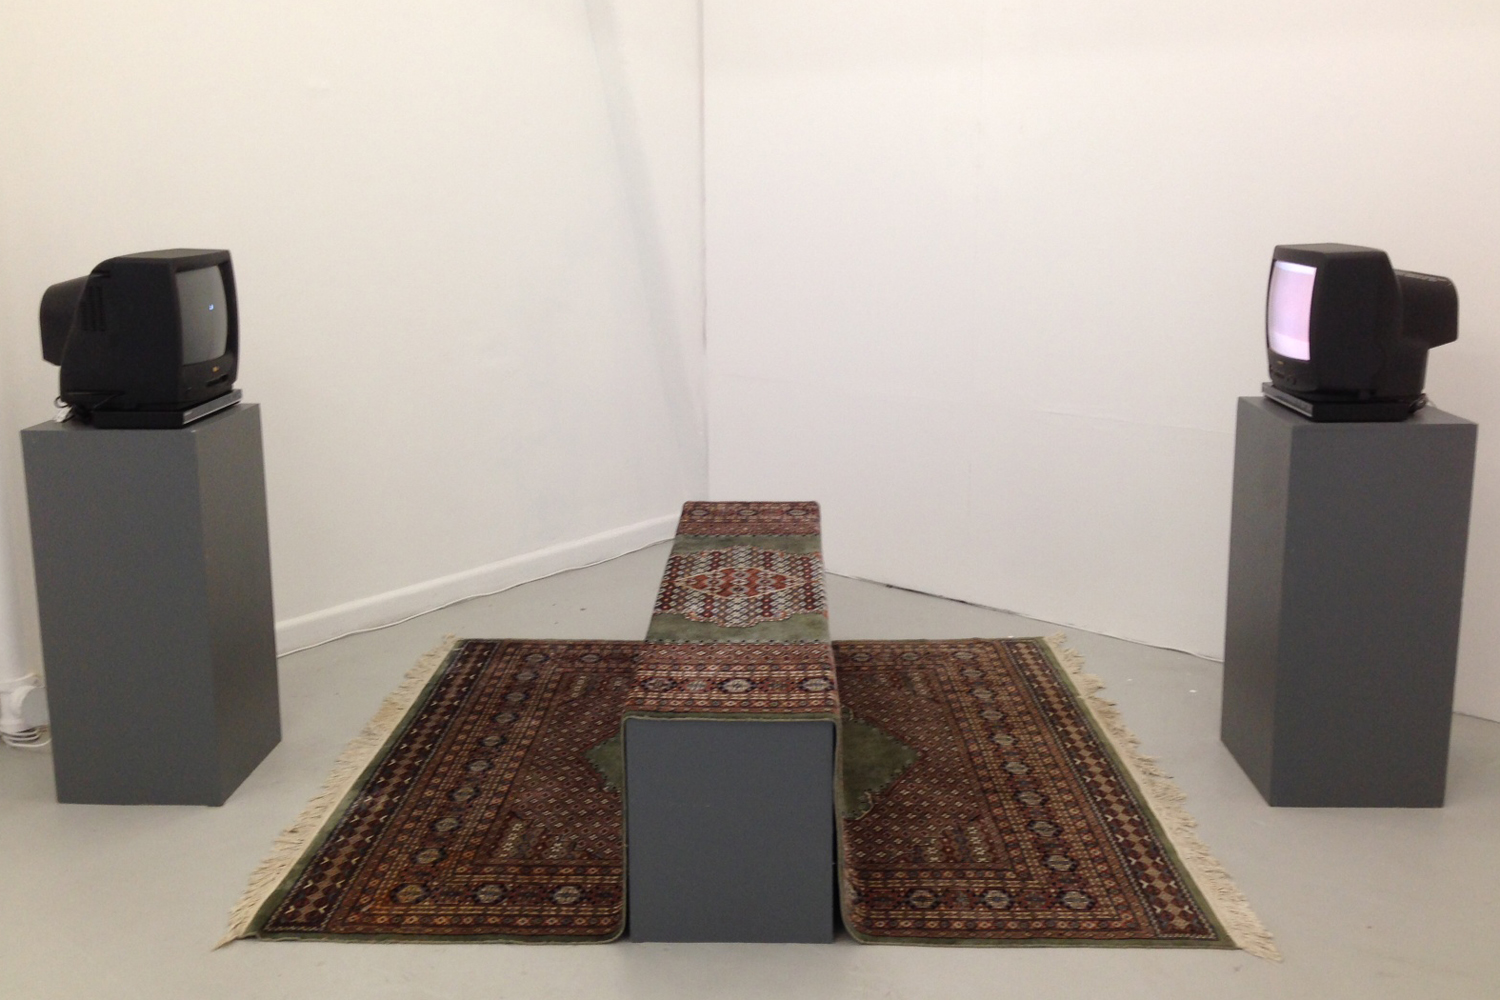 Jacqueline Stojanovic My Colour TV, 2014, Two-channel video, monitors, Persian rug, Installation dimensions variable.